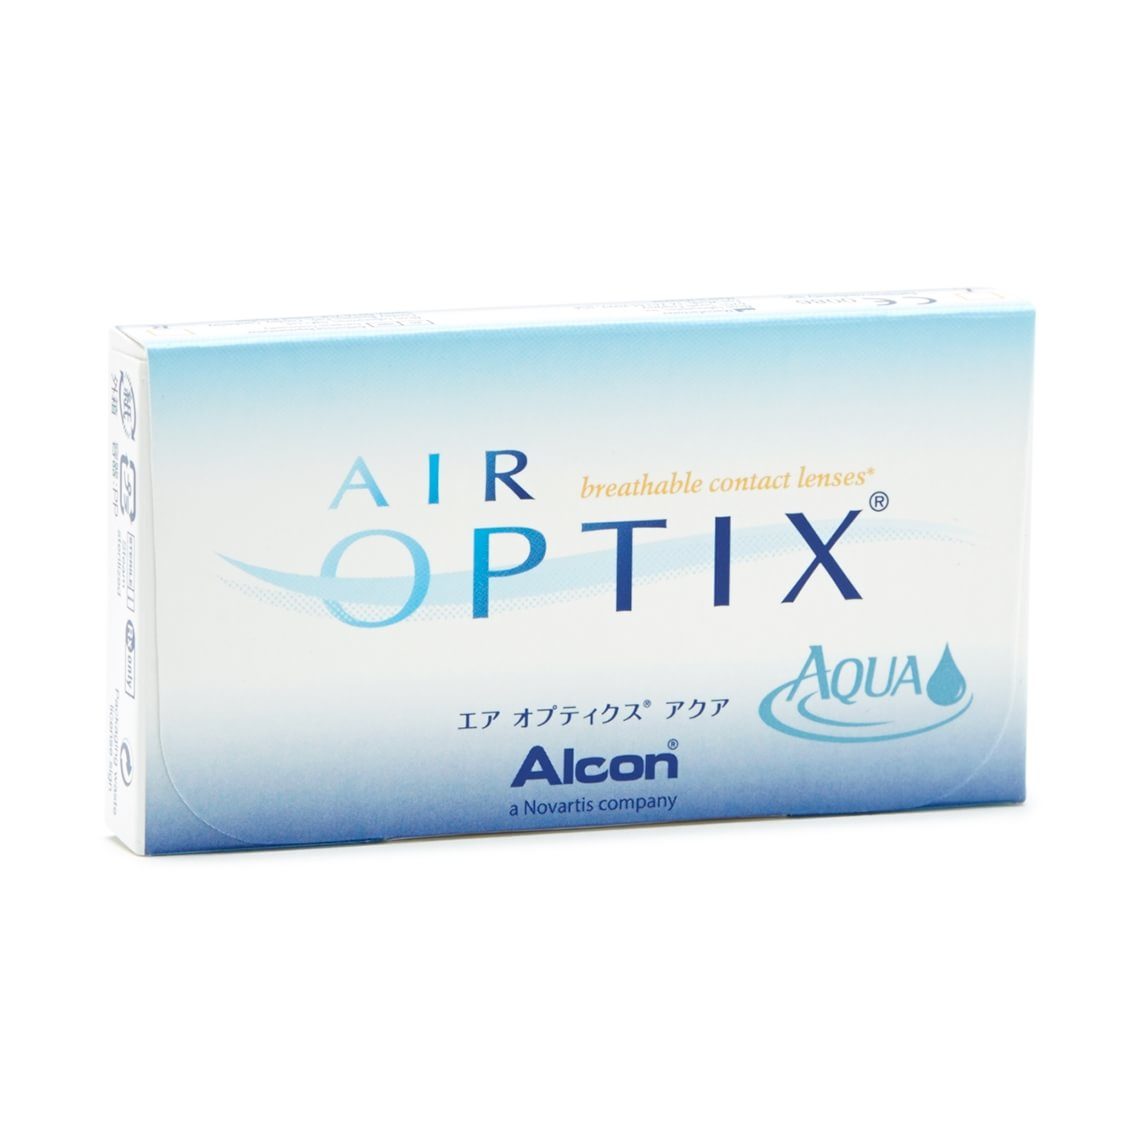 Air Optix Aqua 6 st/box